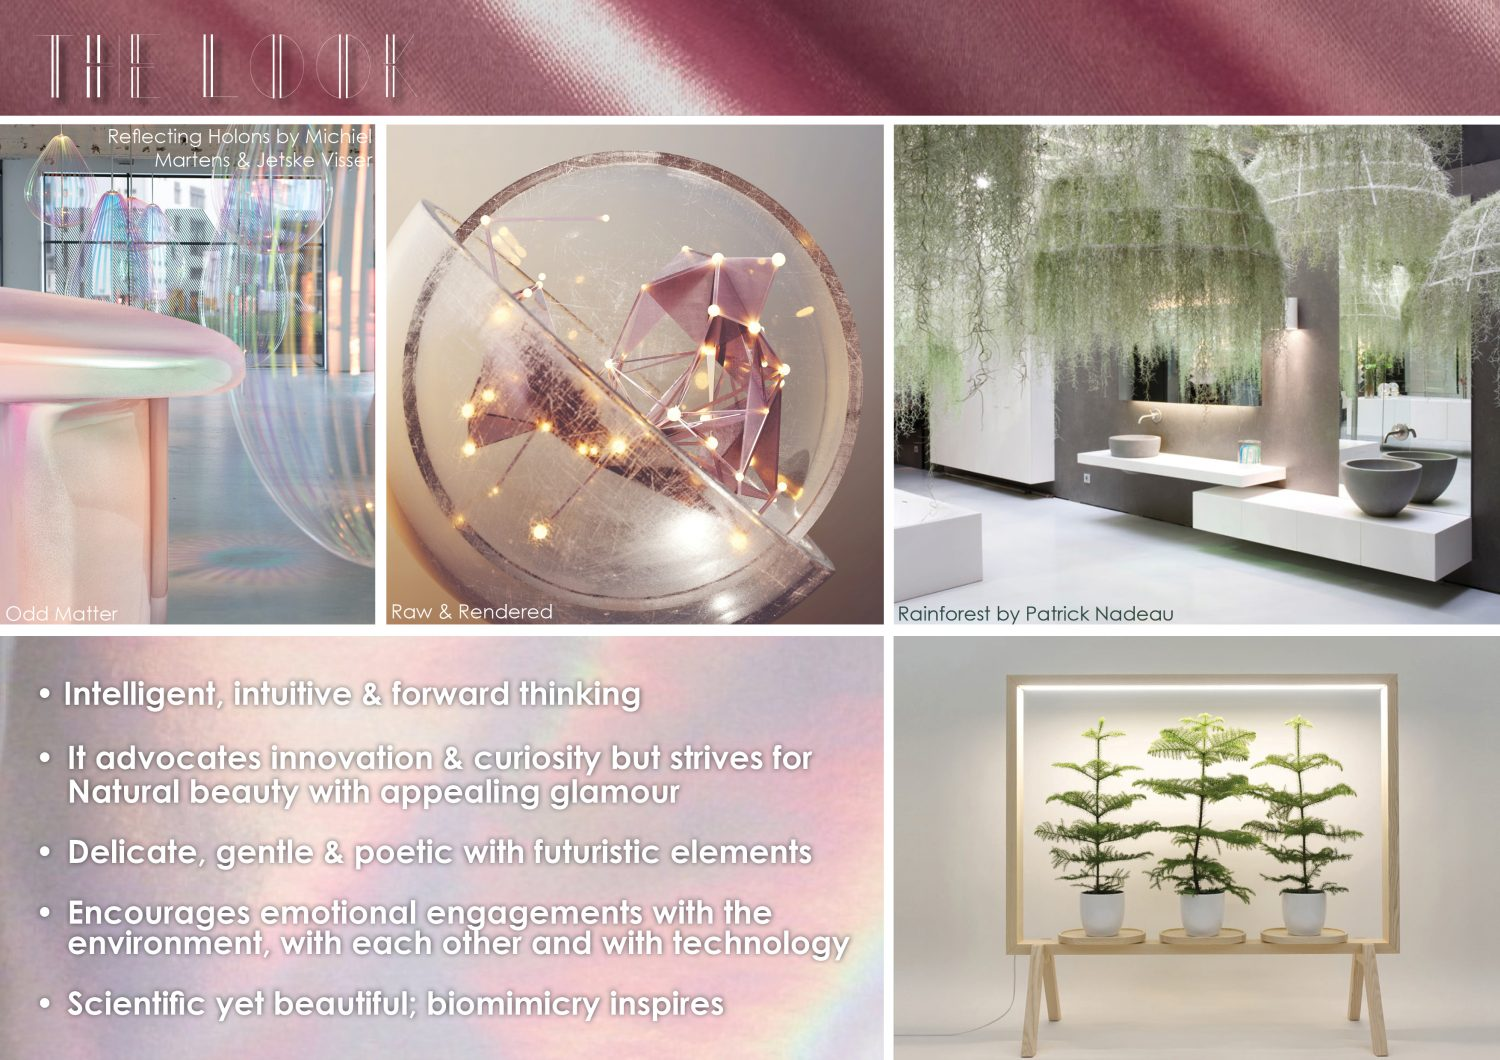 Visionary Consumer and Design Trend for interiors and products